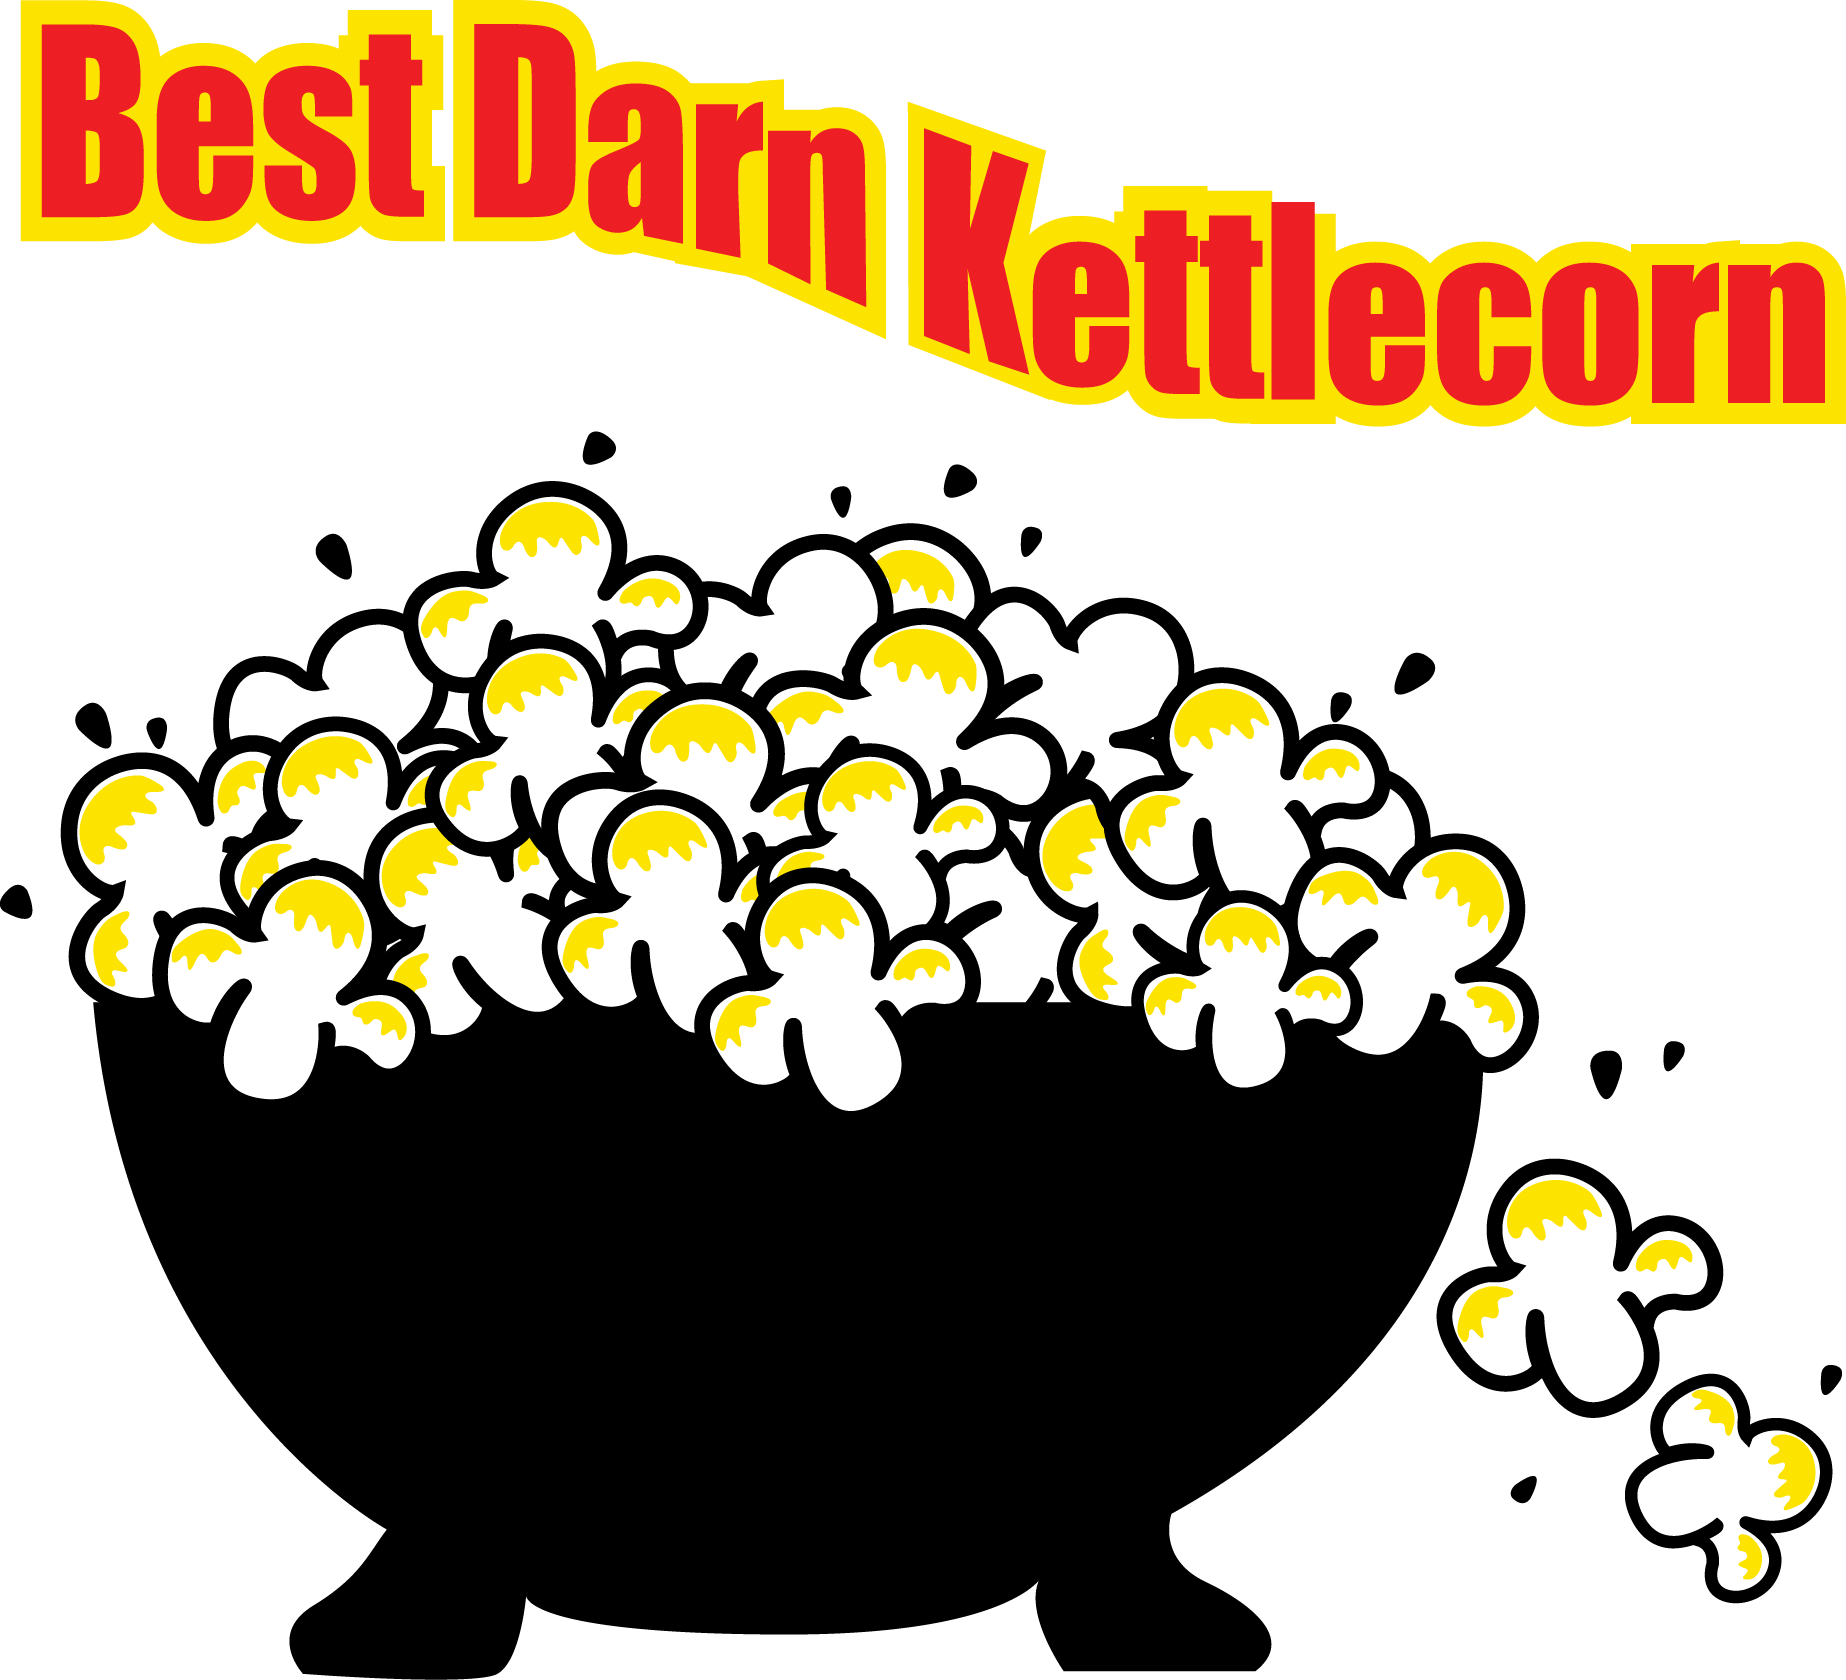 Free Kettle Corn Cliparts, Download Free Clip Art, Free Clip Art on.